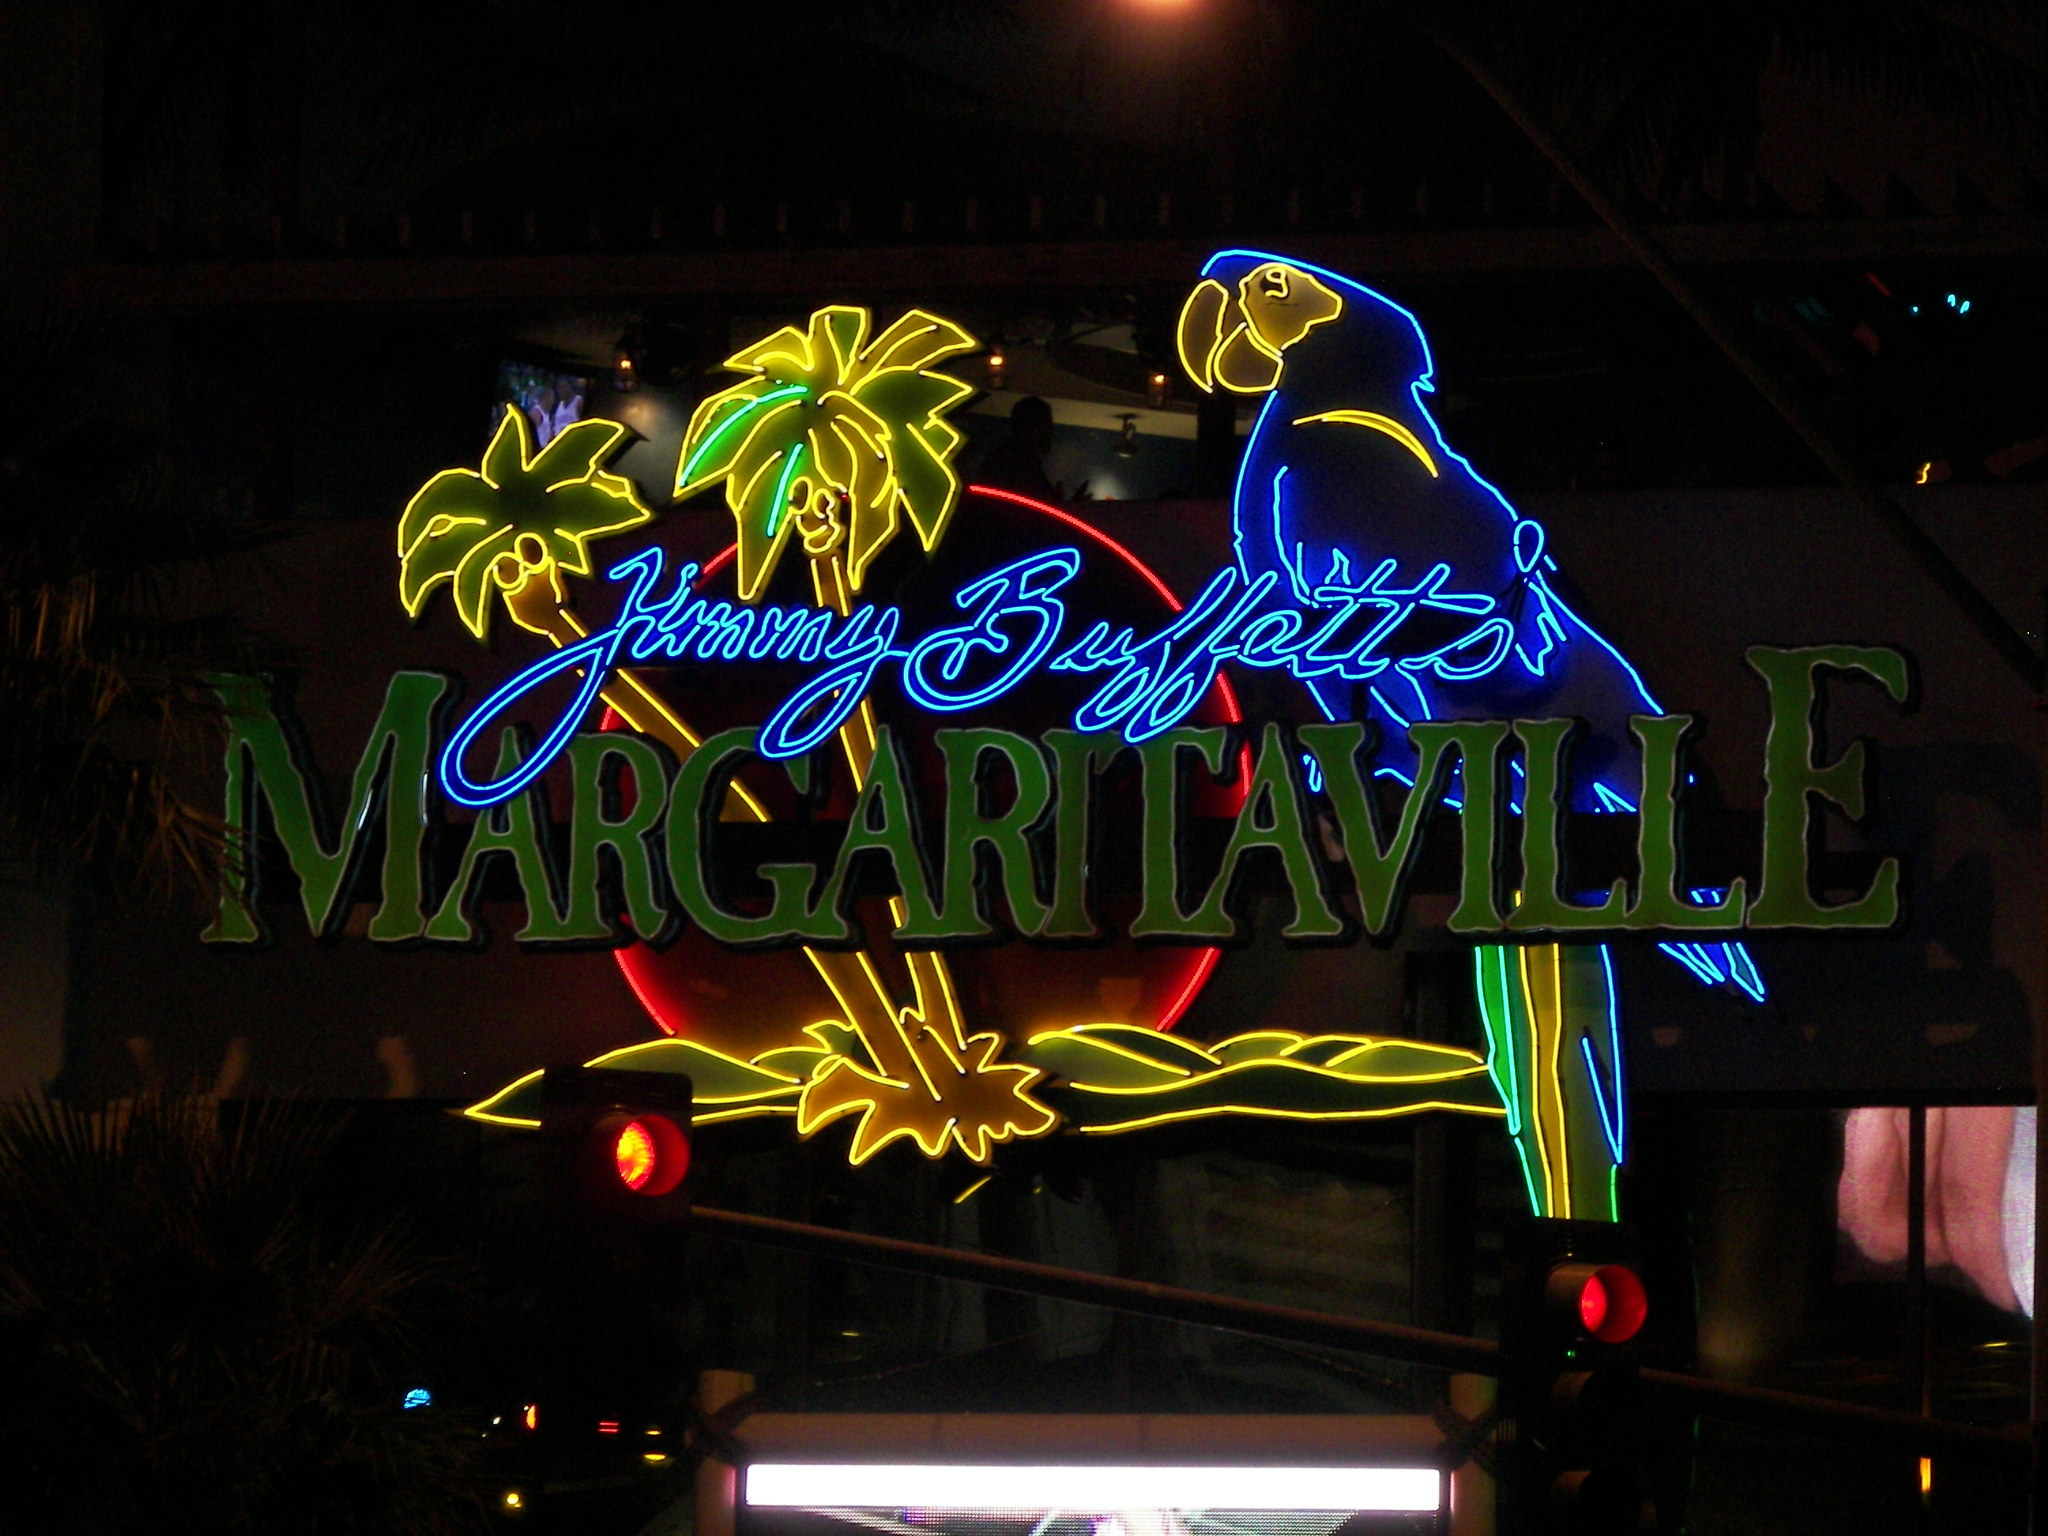 Jimmy Buffett Margaritaville Wallpaper Traffic Club